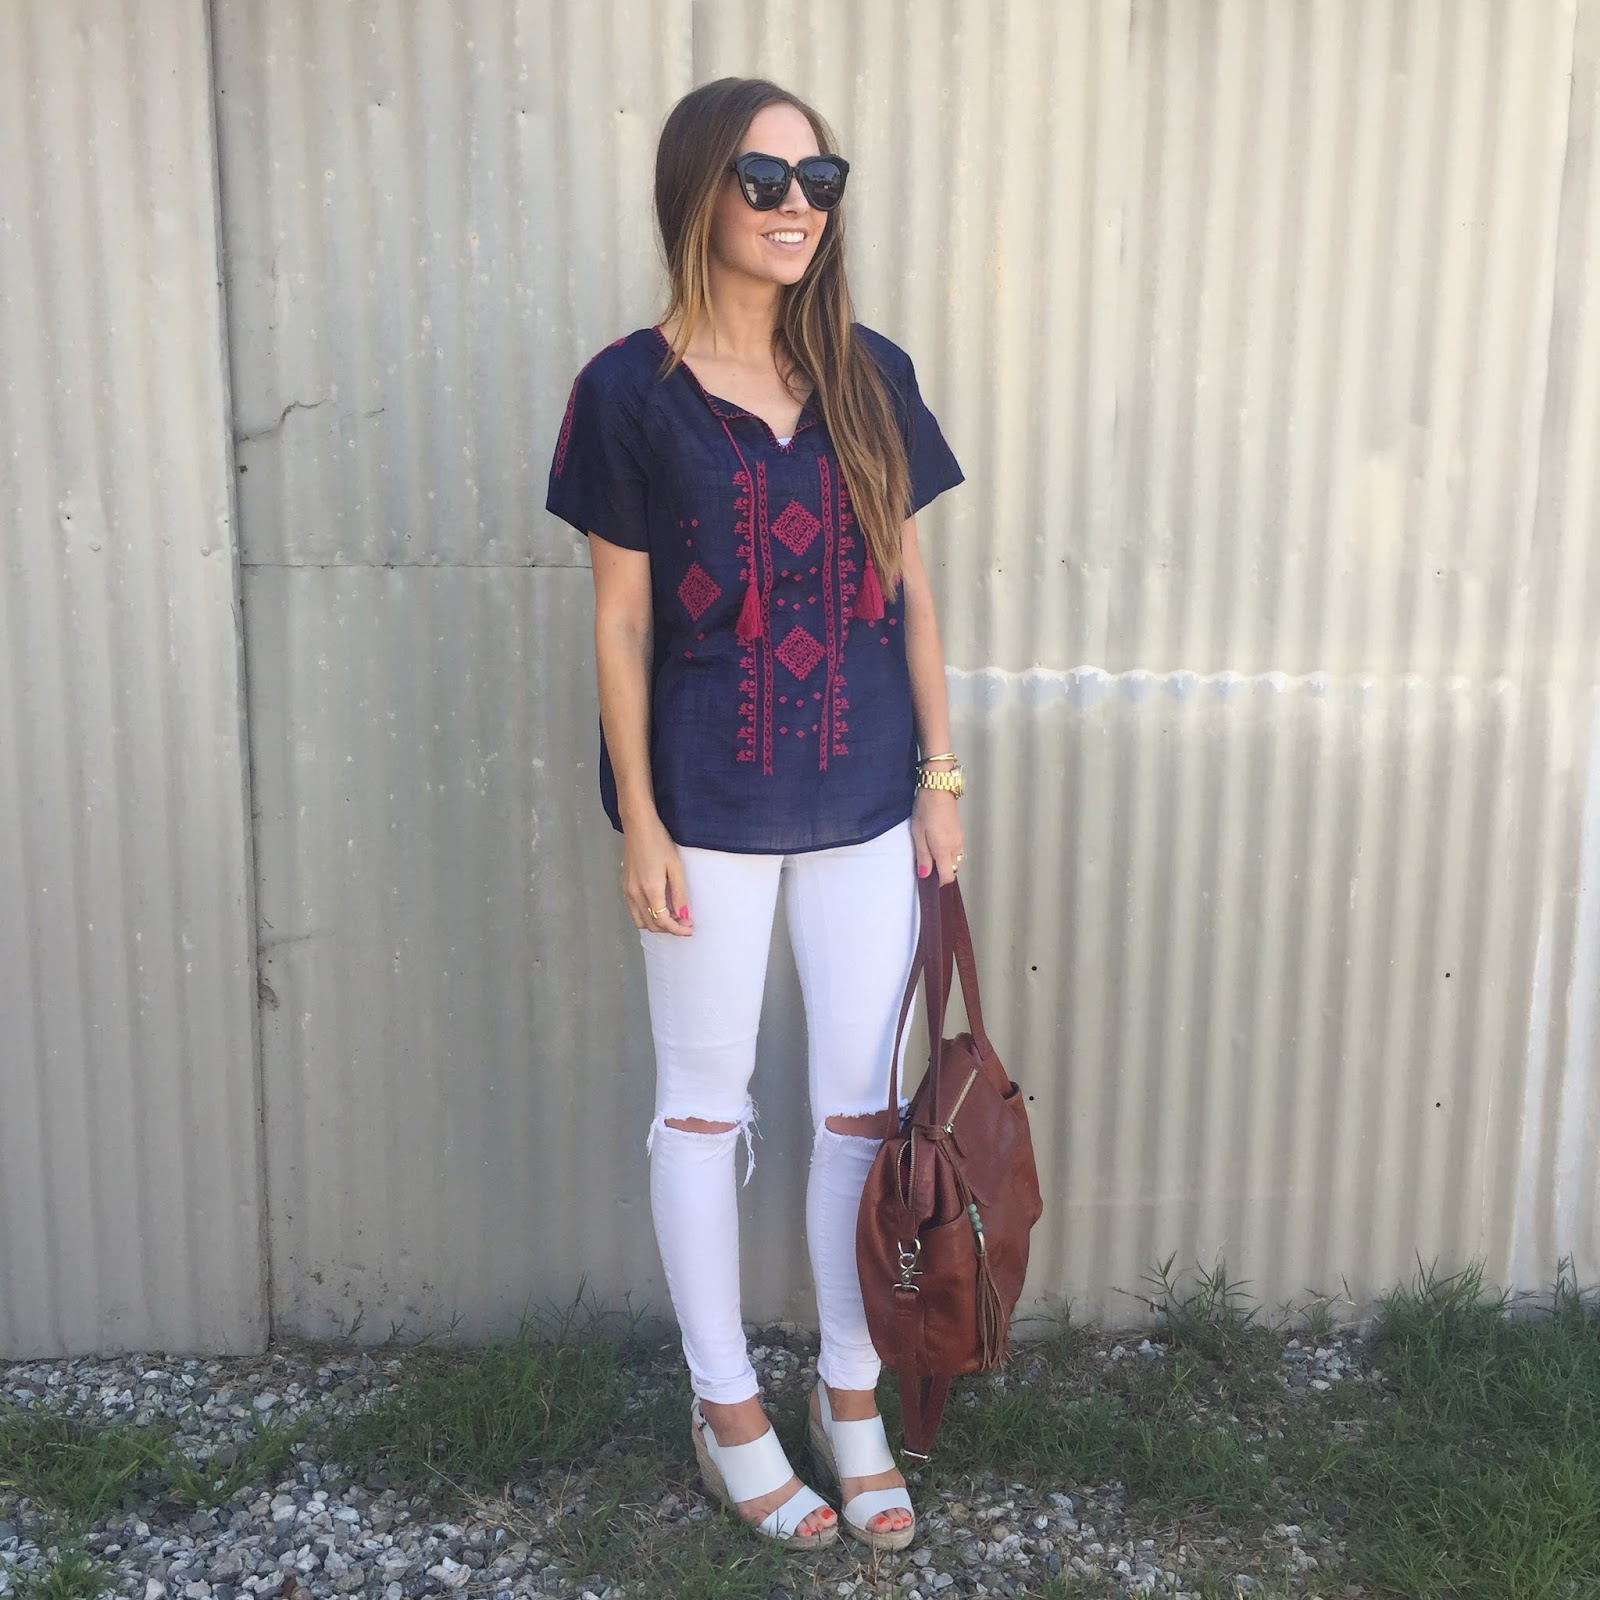 Merrick's Art | Embroidered Tee, Distressed Jeans, White Wedges